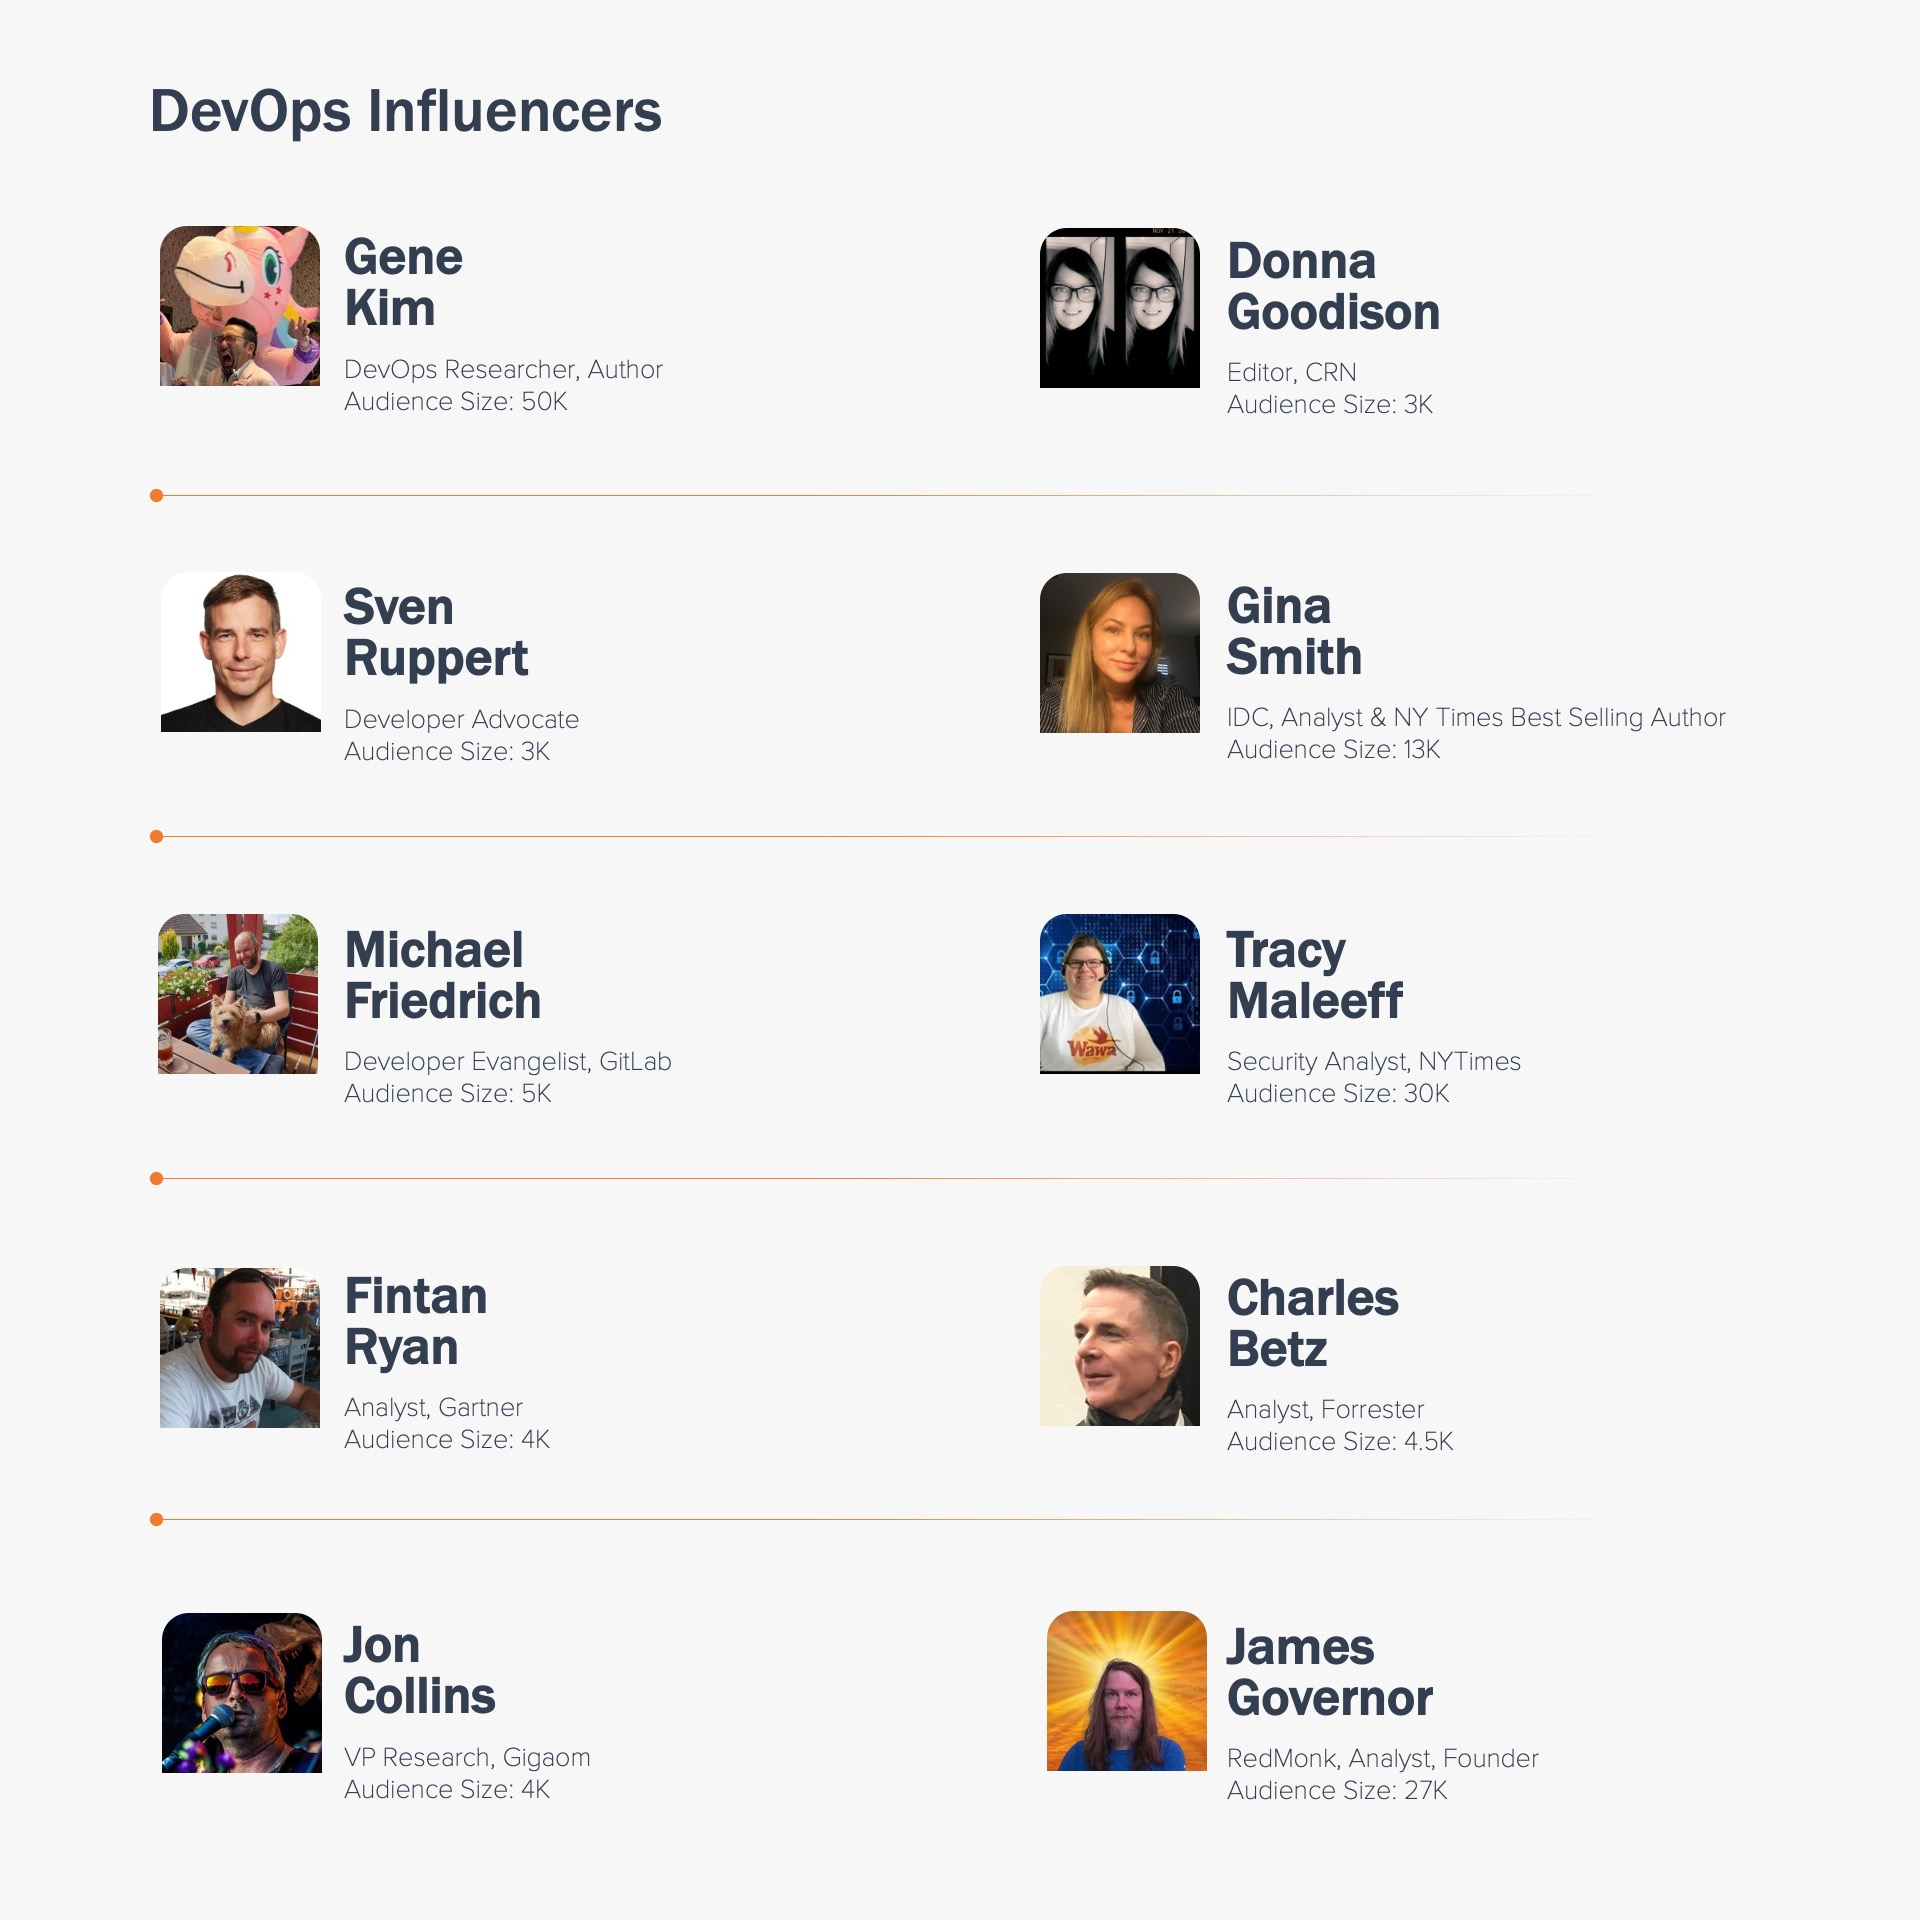 DevOps Influencers